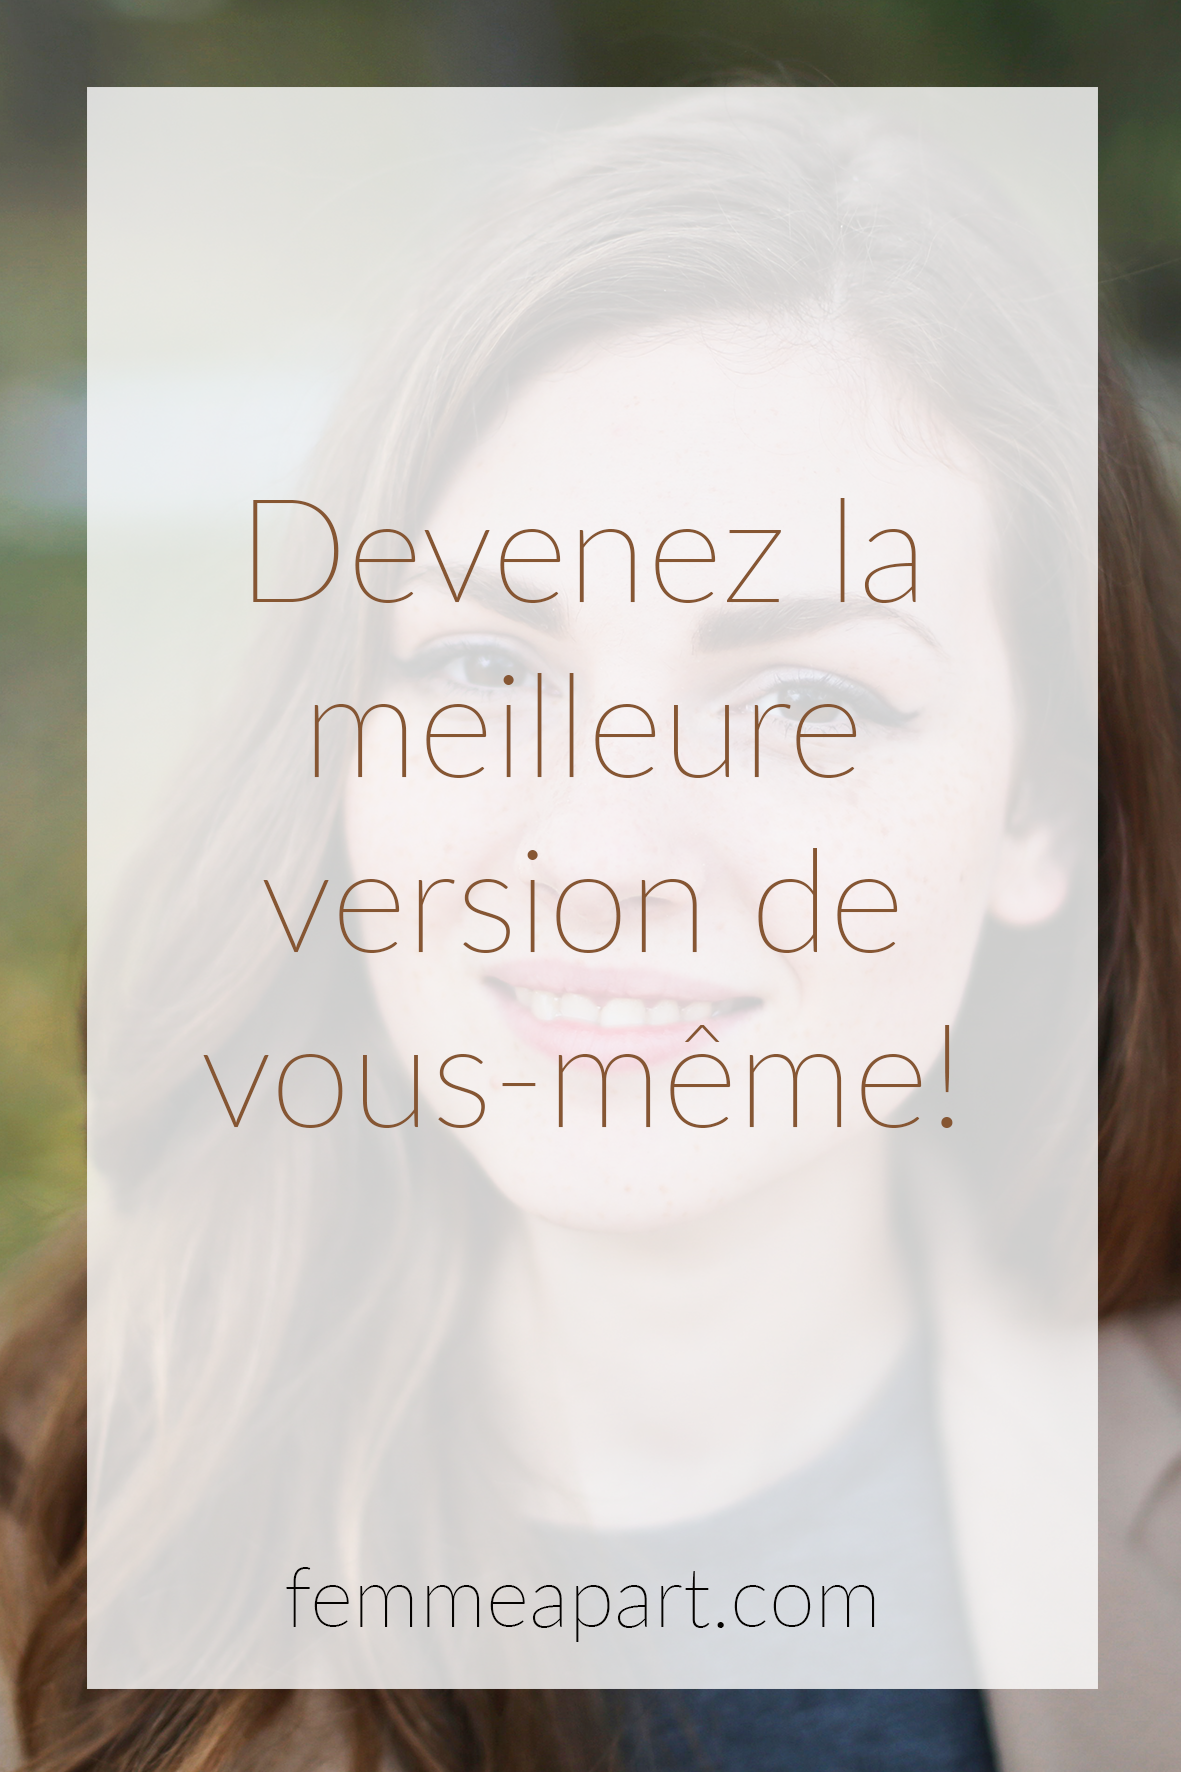 Meileure version